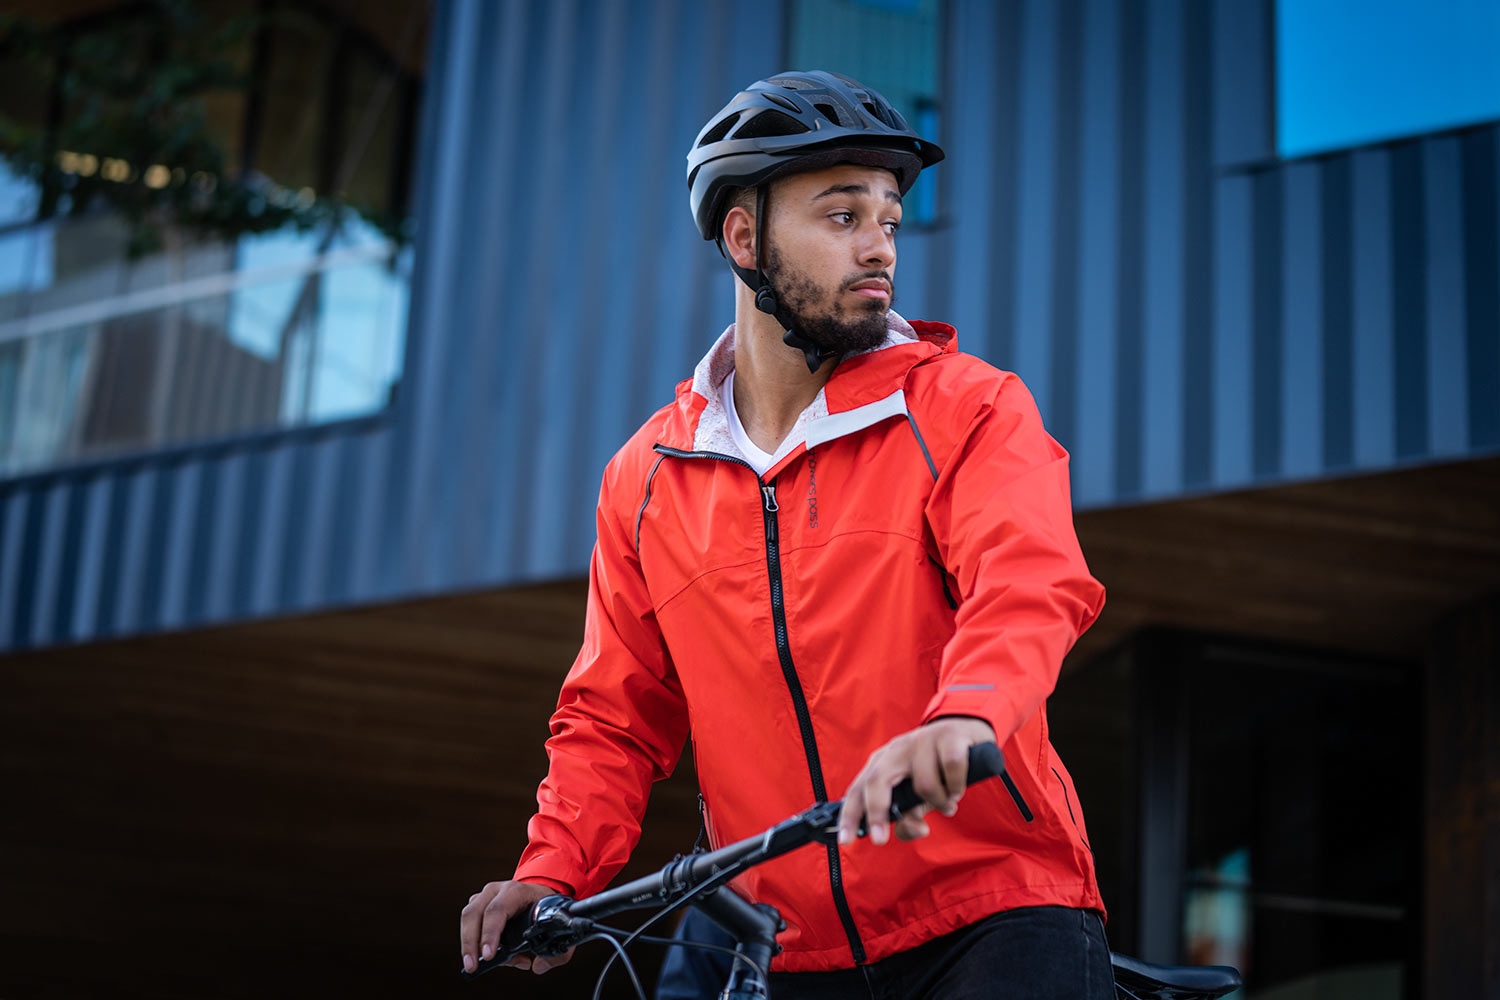 Men's Syncline CC Jacket - with sustainable clean color dyes